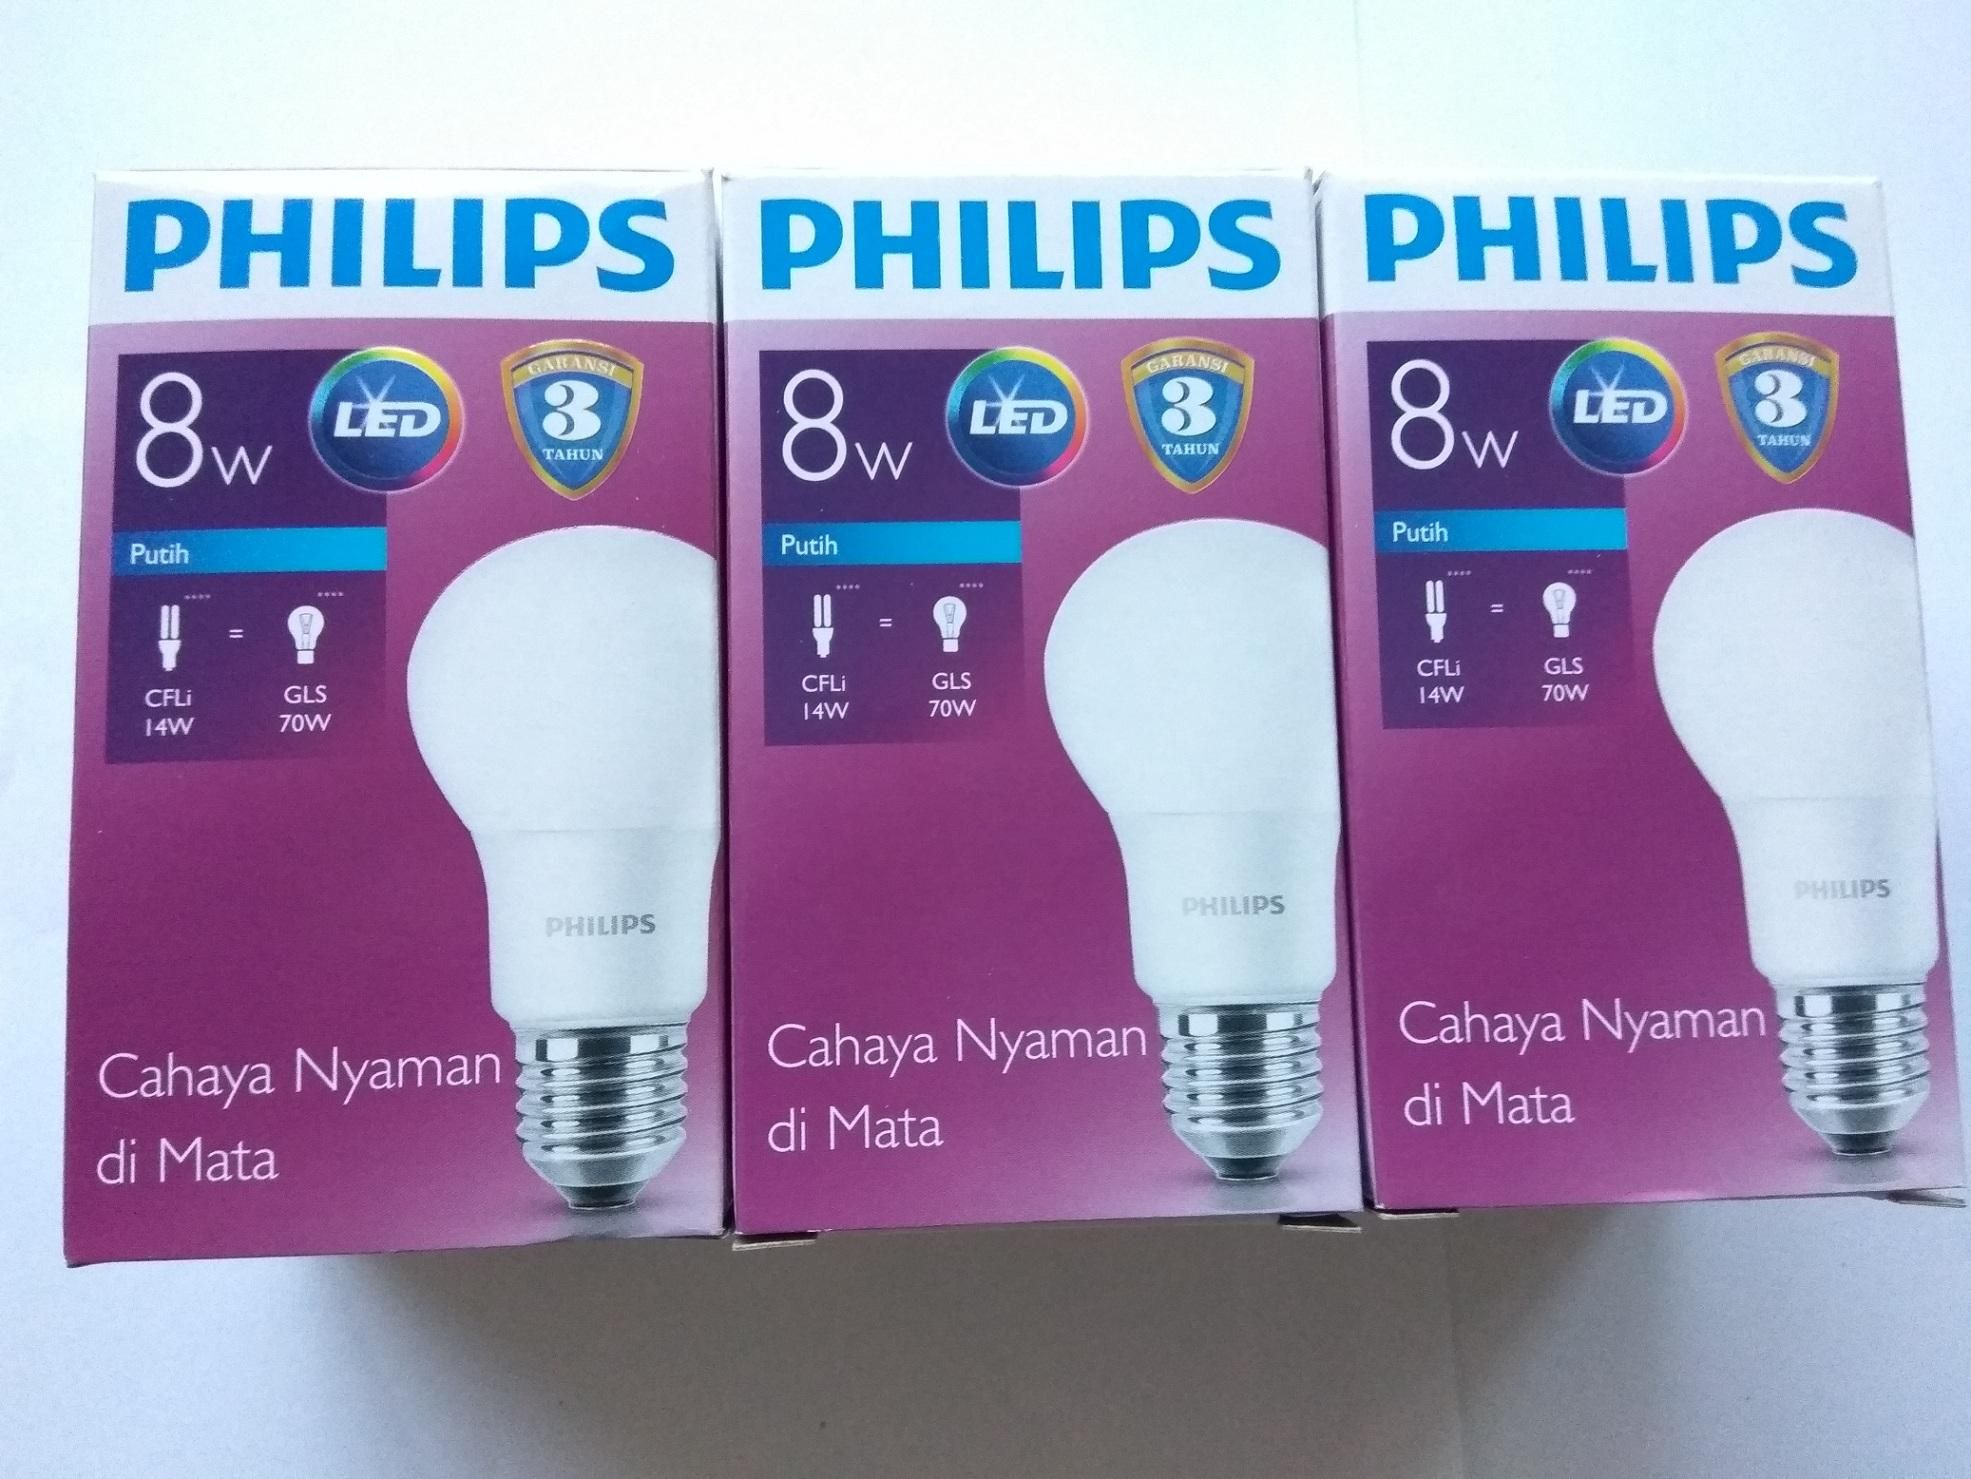 Buy Sell Cheapest Led Philips 9w Best Quality Product Deals Lampu 8w Paket 3pcs White Pengganti